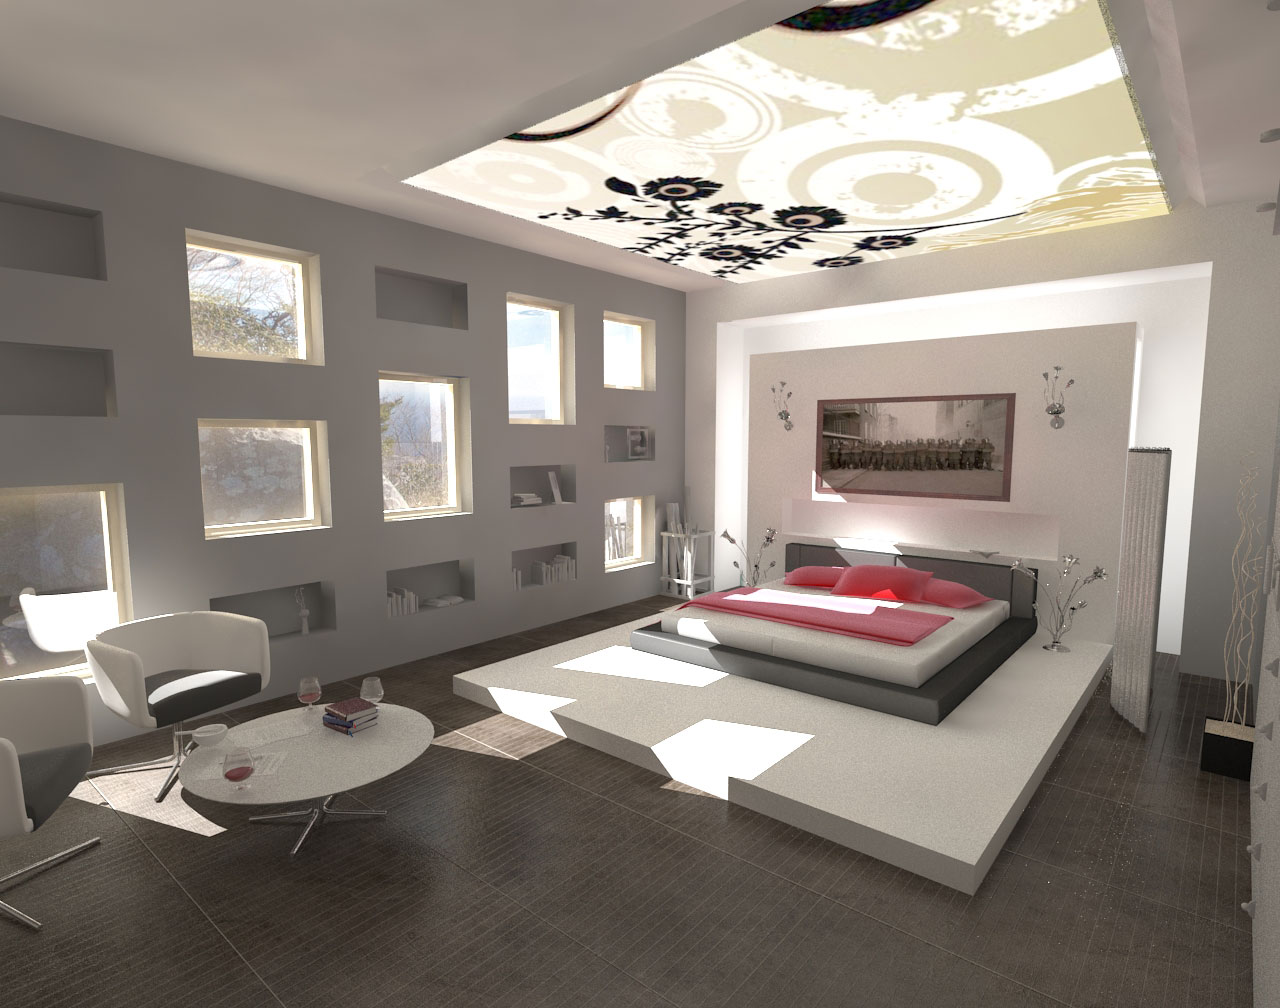 Decorations minimalist design modern bedroom interior for New house interior design